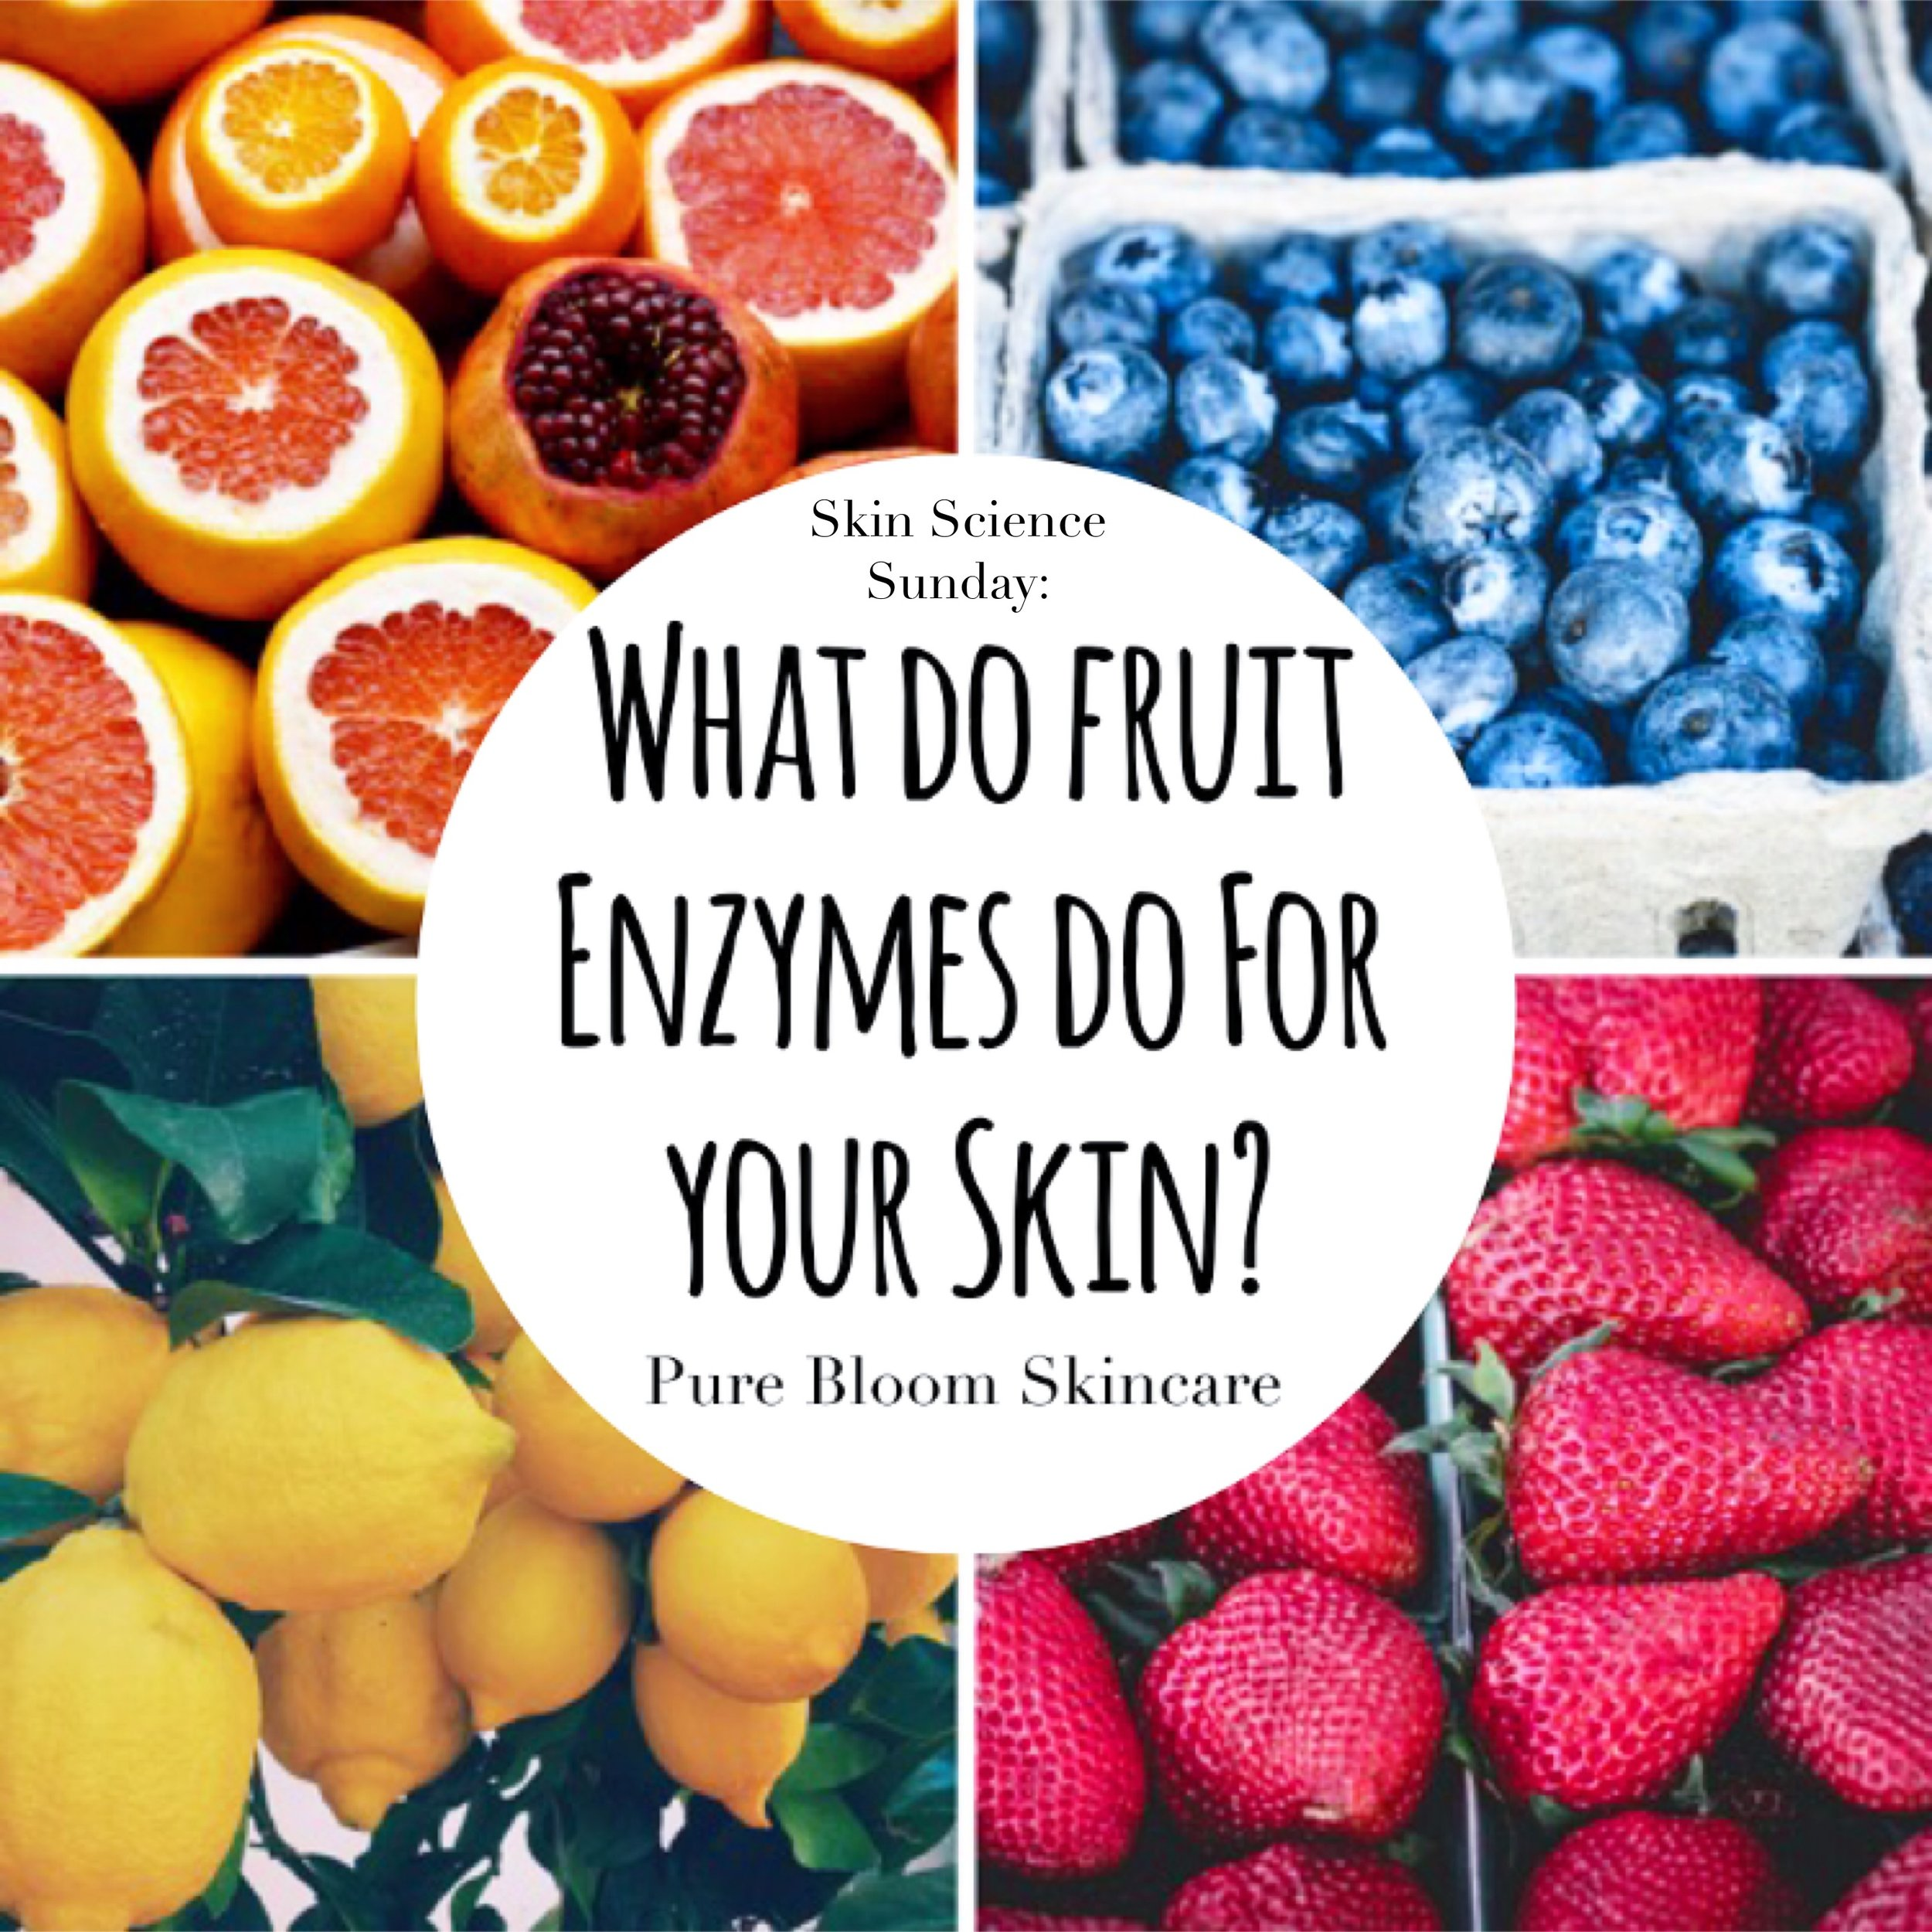 pure bloom skincare - skin science sunday: what do fruit